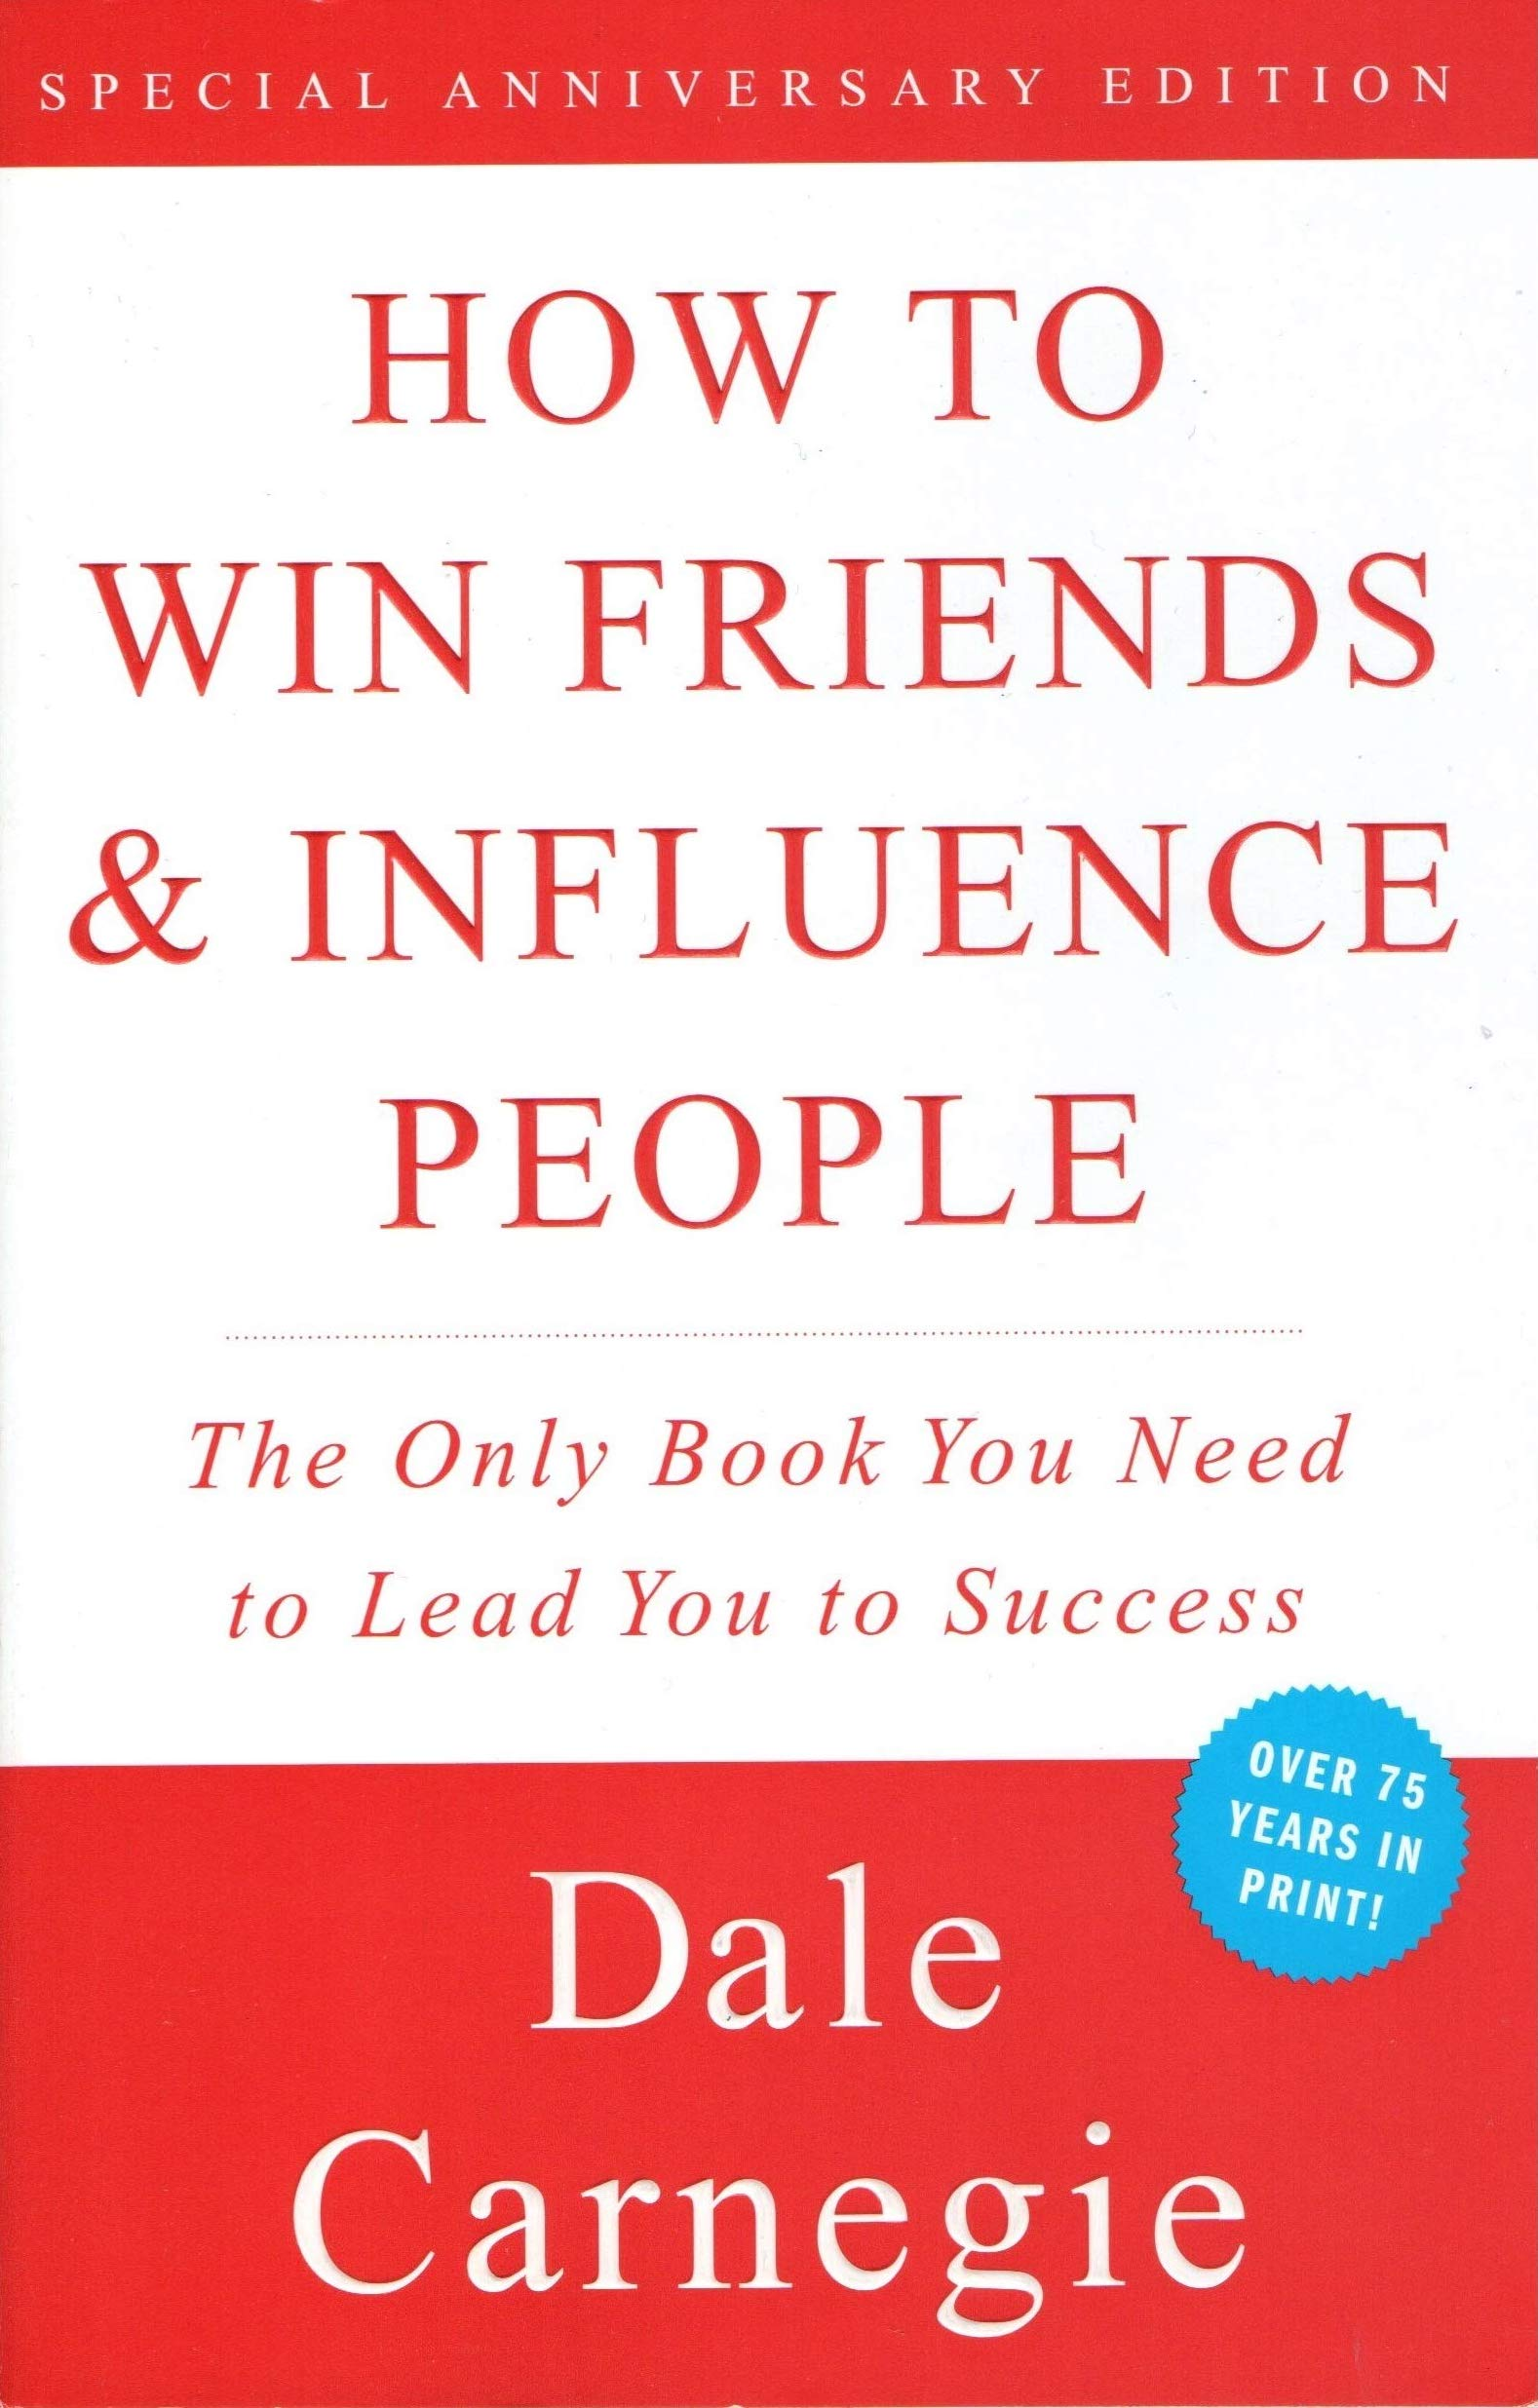 Must-read business books | How to win friends & influence people